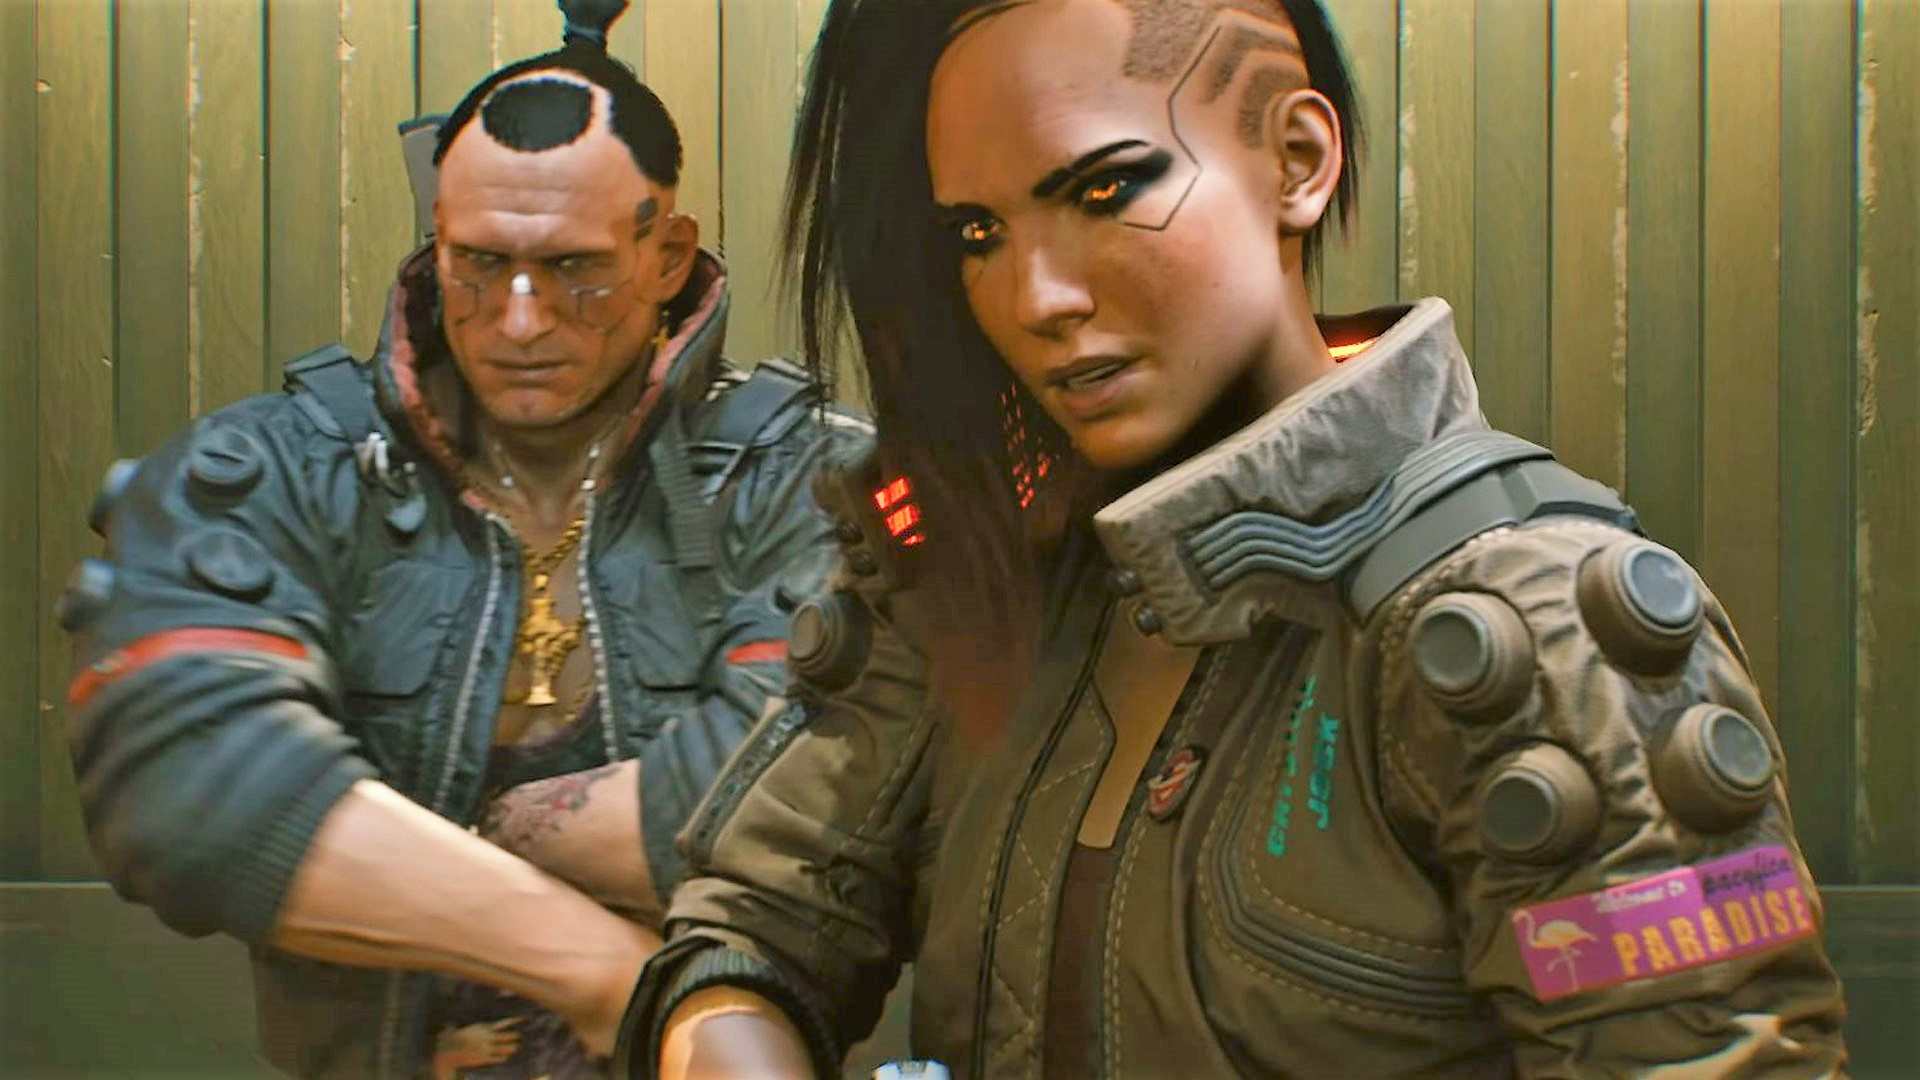 Cyberpunk 2077: Developers Drop Male/Female Options In Character Creator